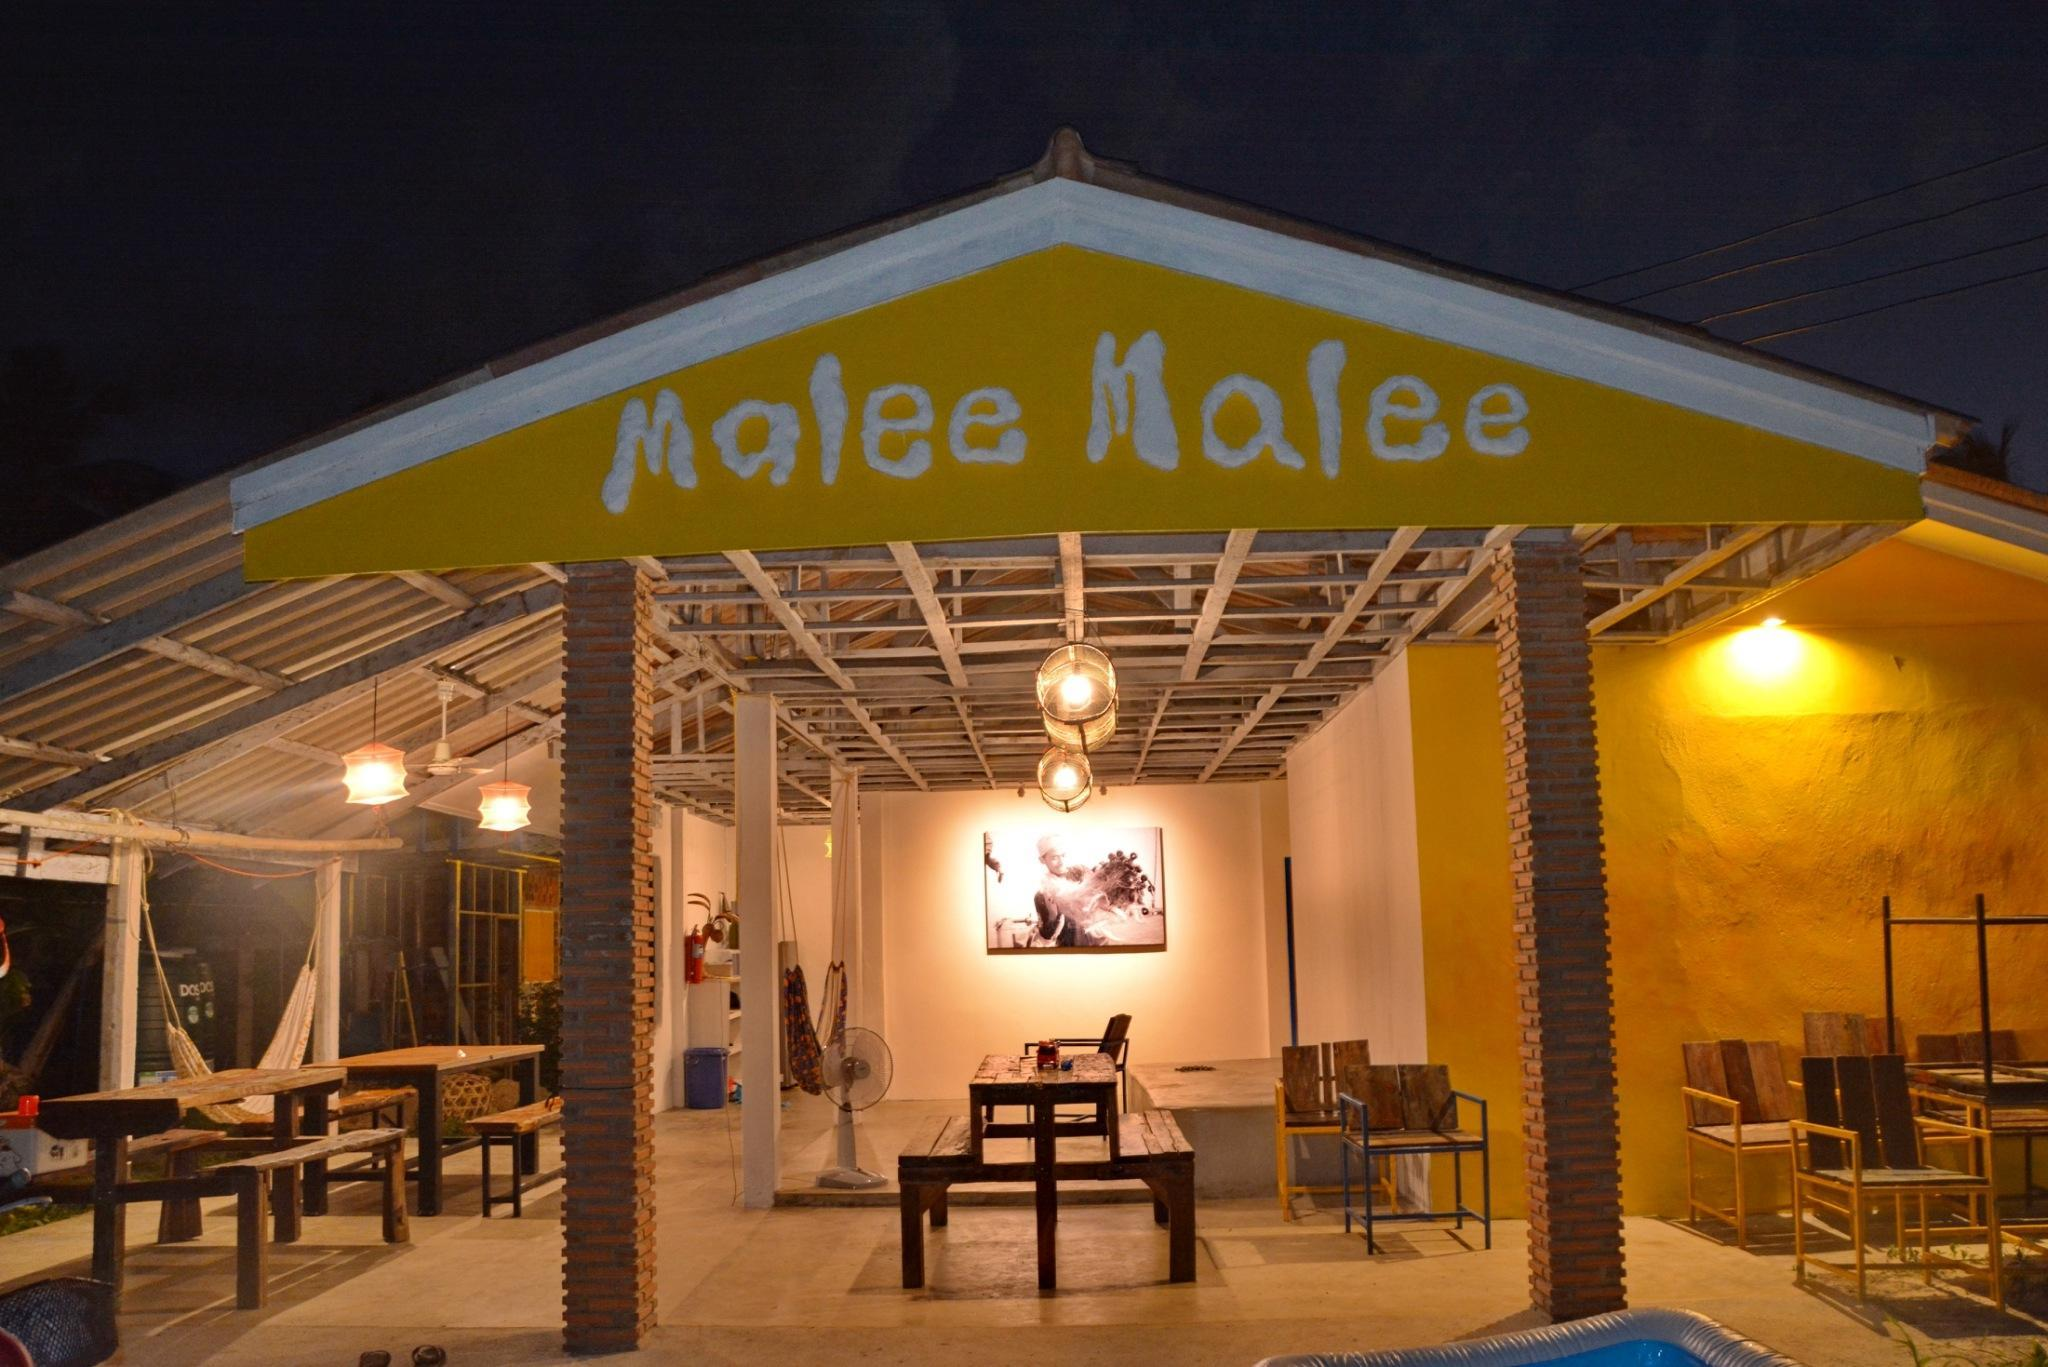 Malee Malee Guesthouse